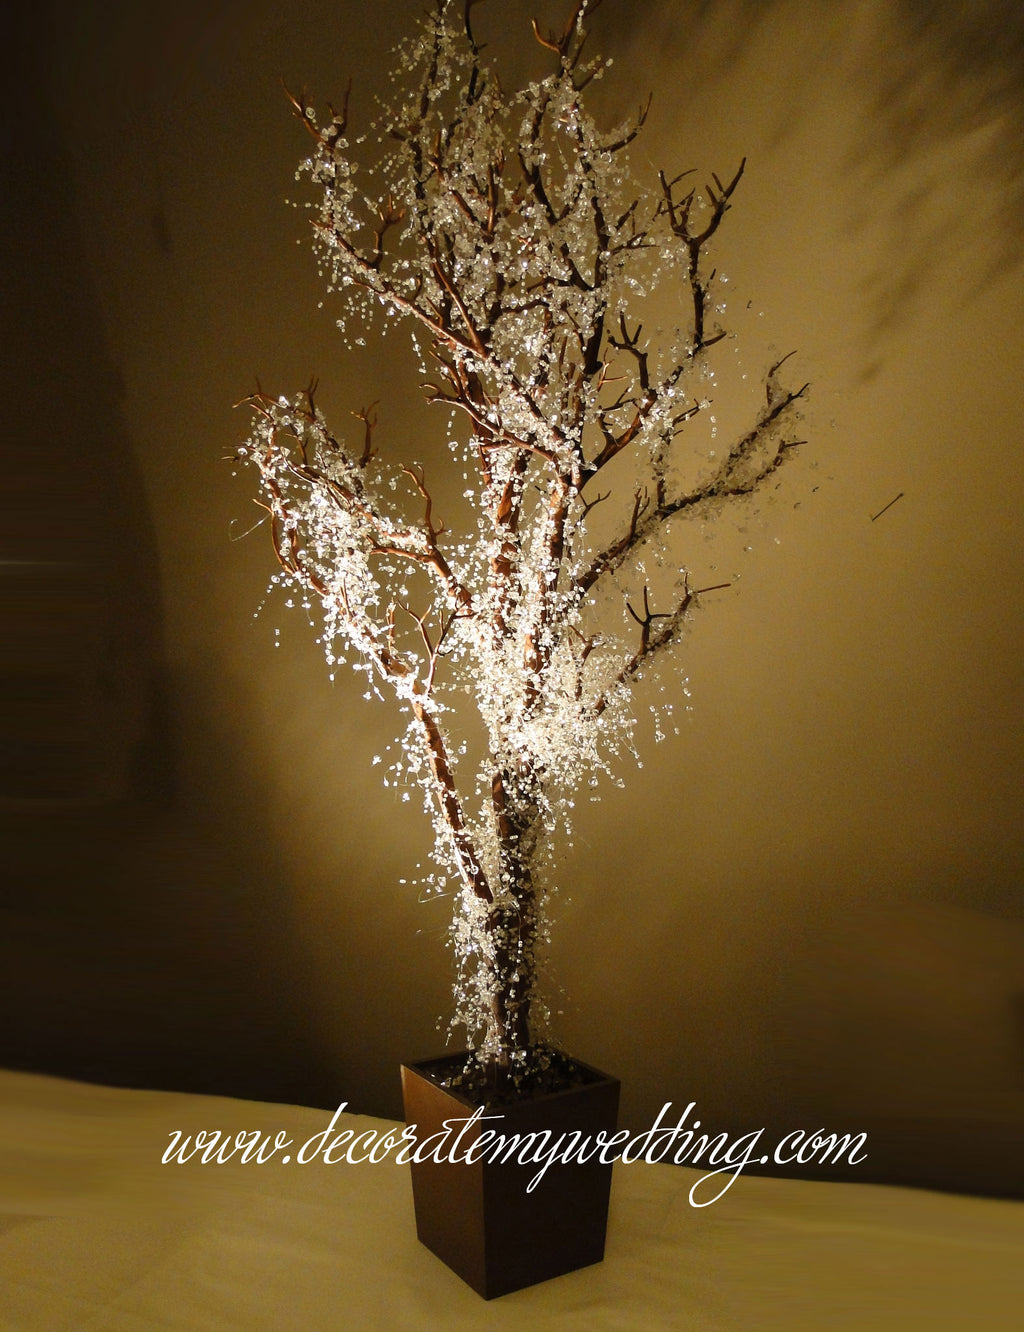 Frosty garland on tree make a perfect winter wonderland decoration.